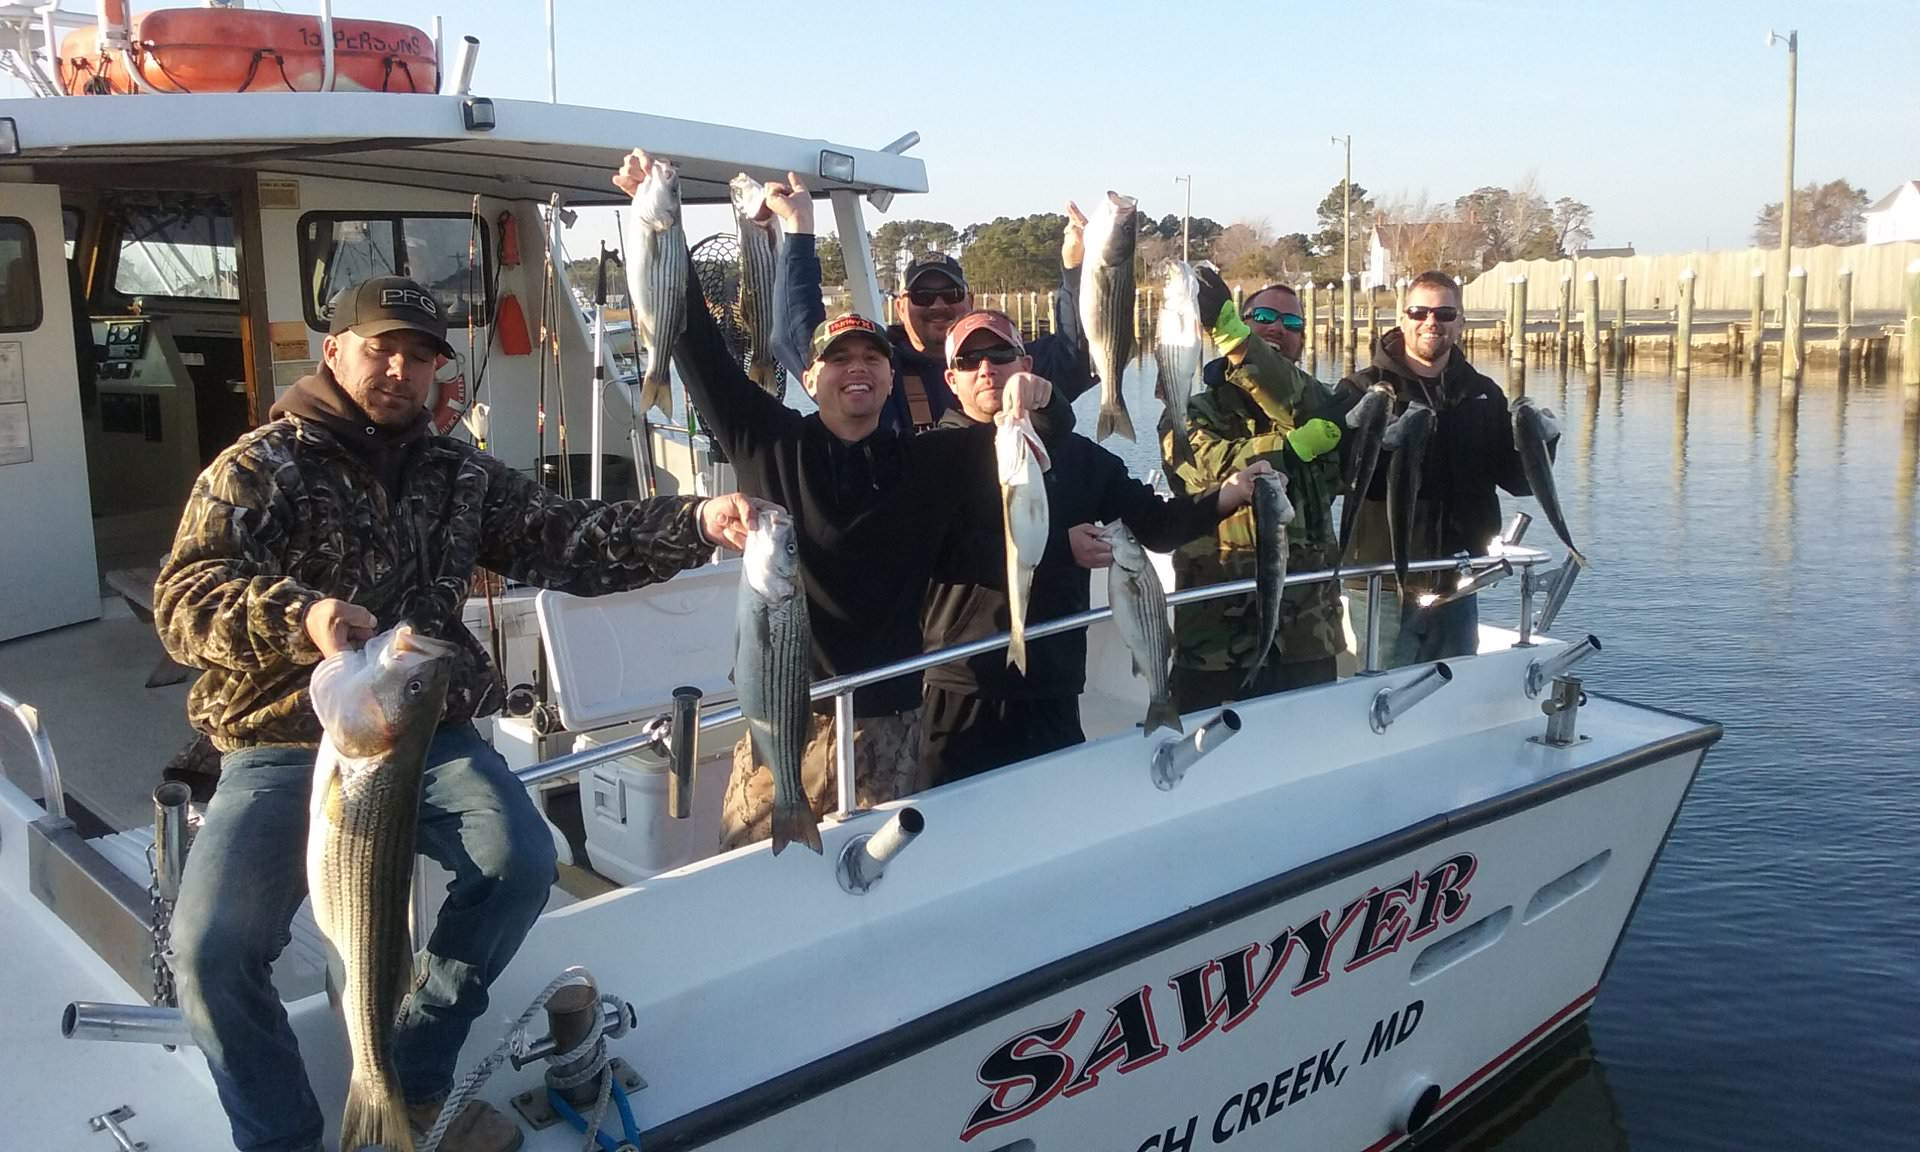 Trolling for Rockfish on Maryland's Chesapeake Bay!